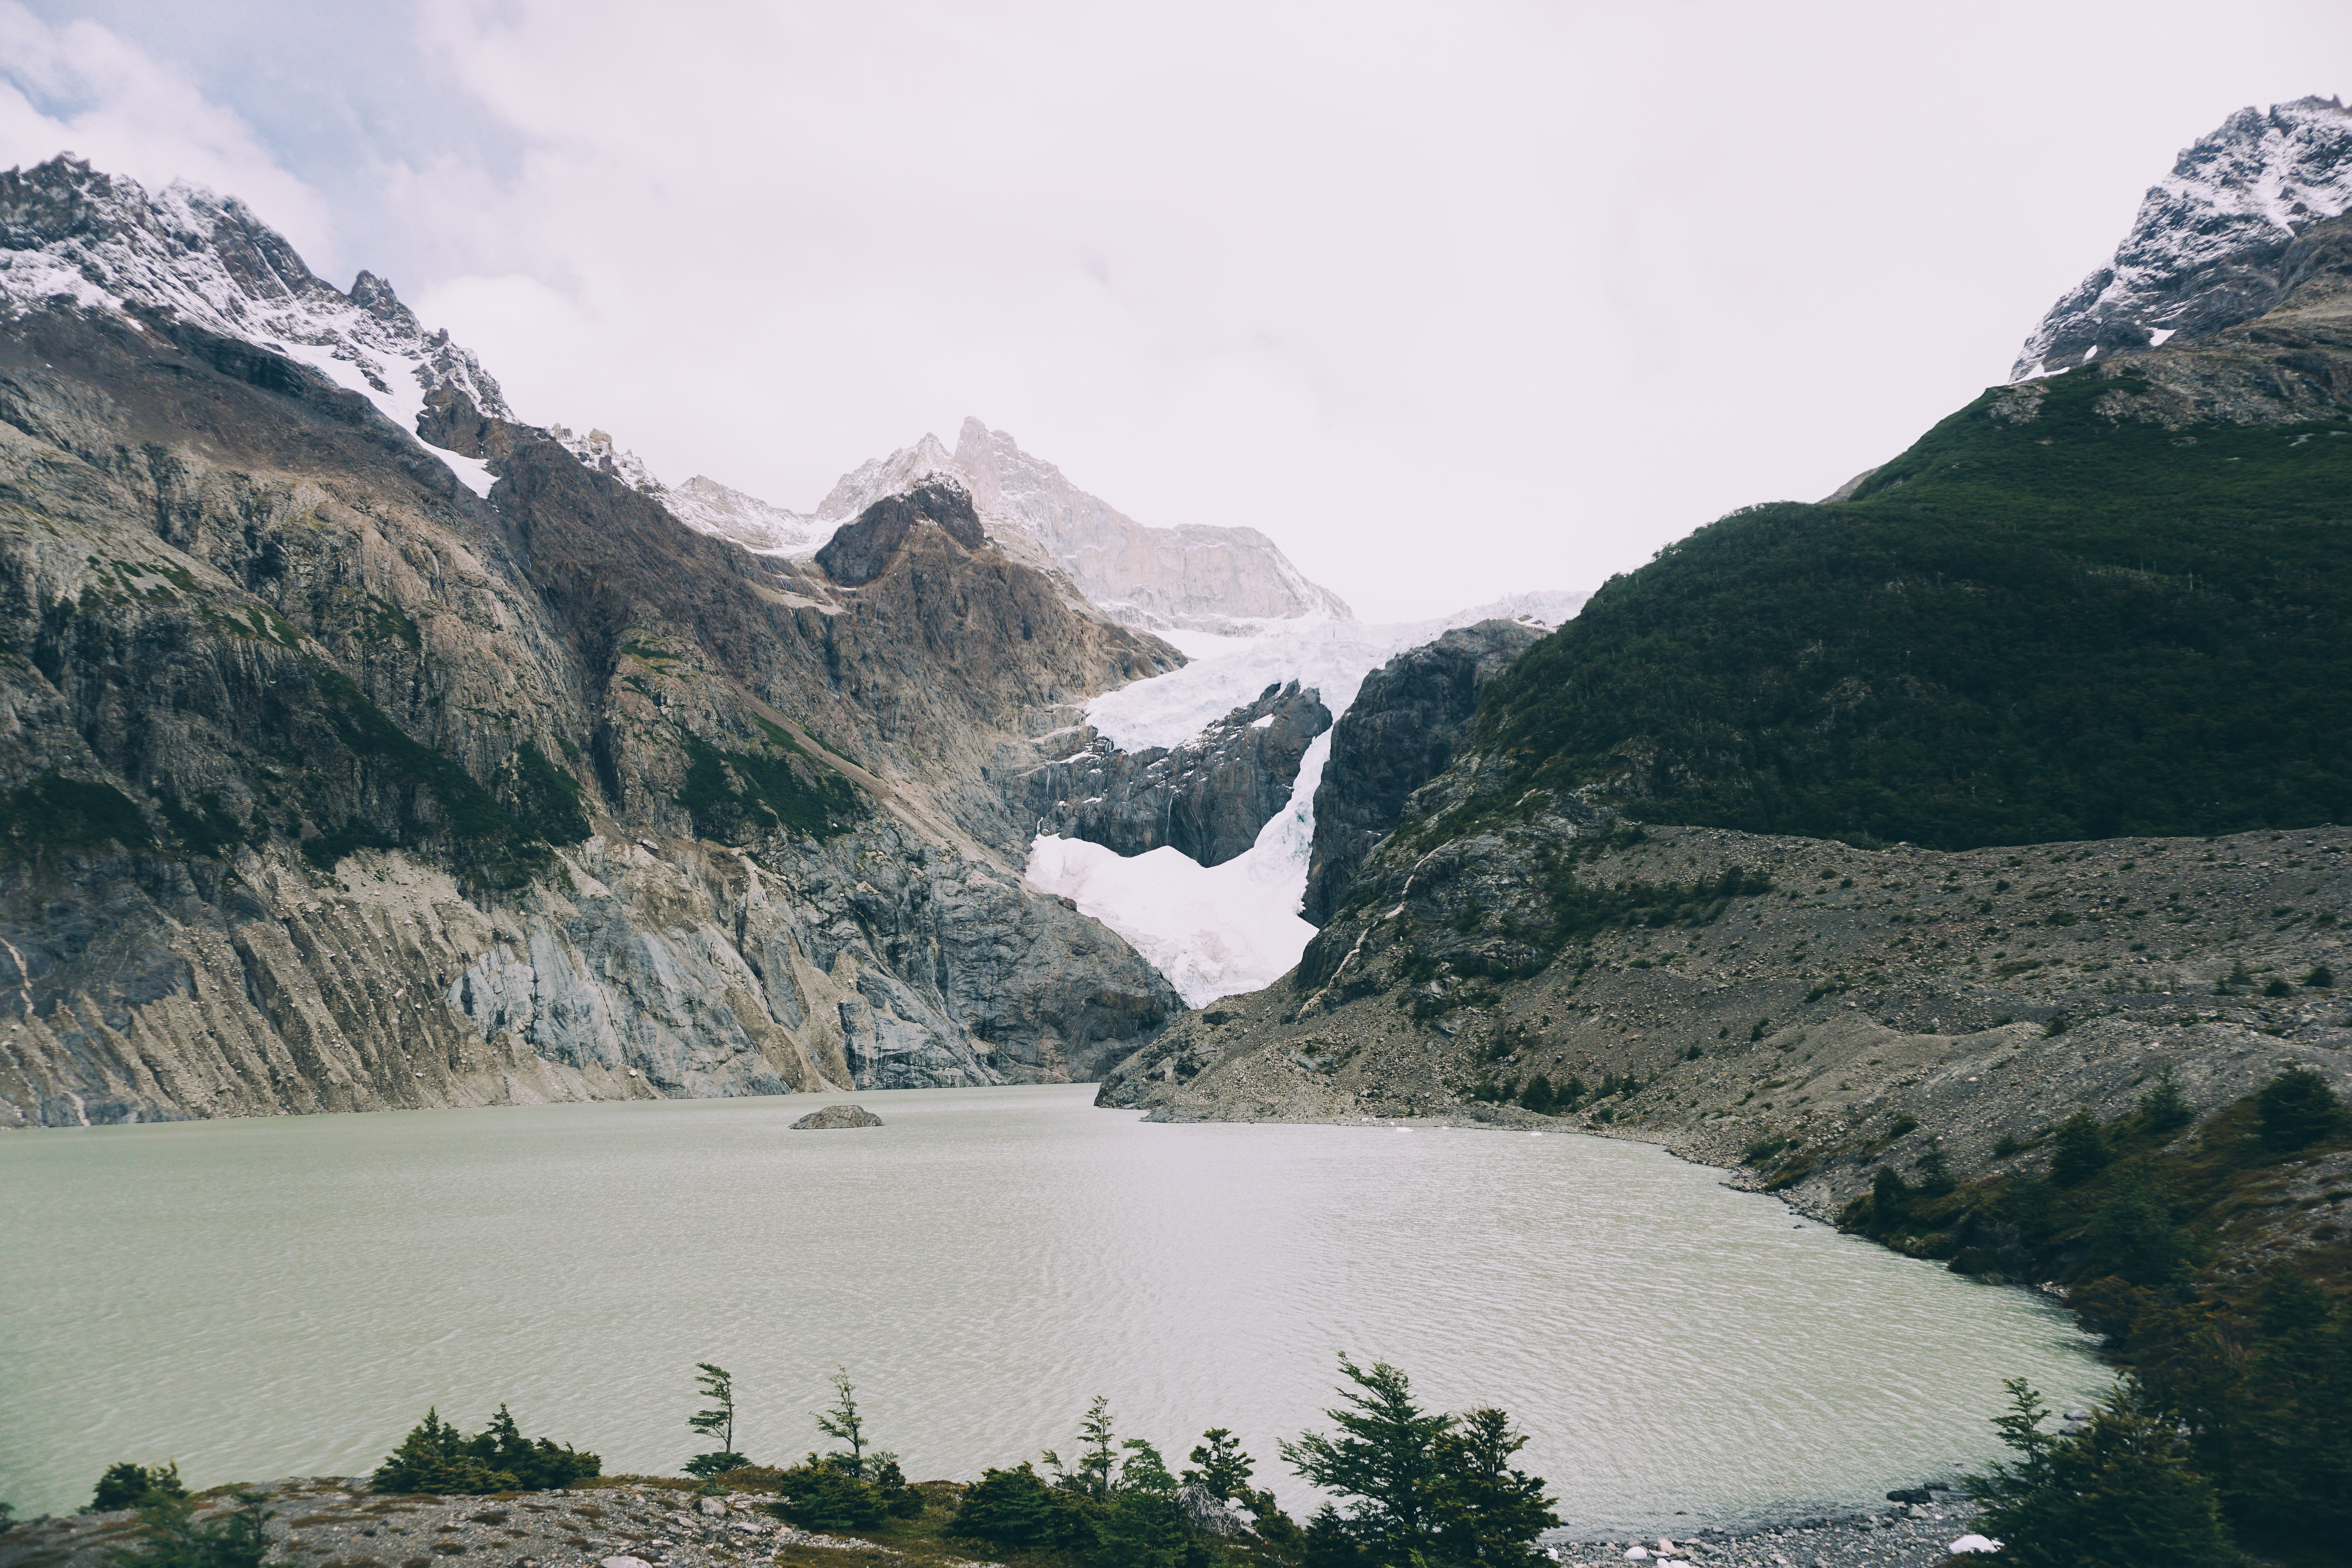 A lake near a mountain glacier in Torres del Paine National Park